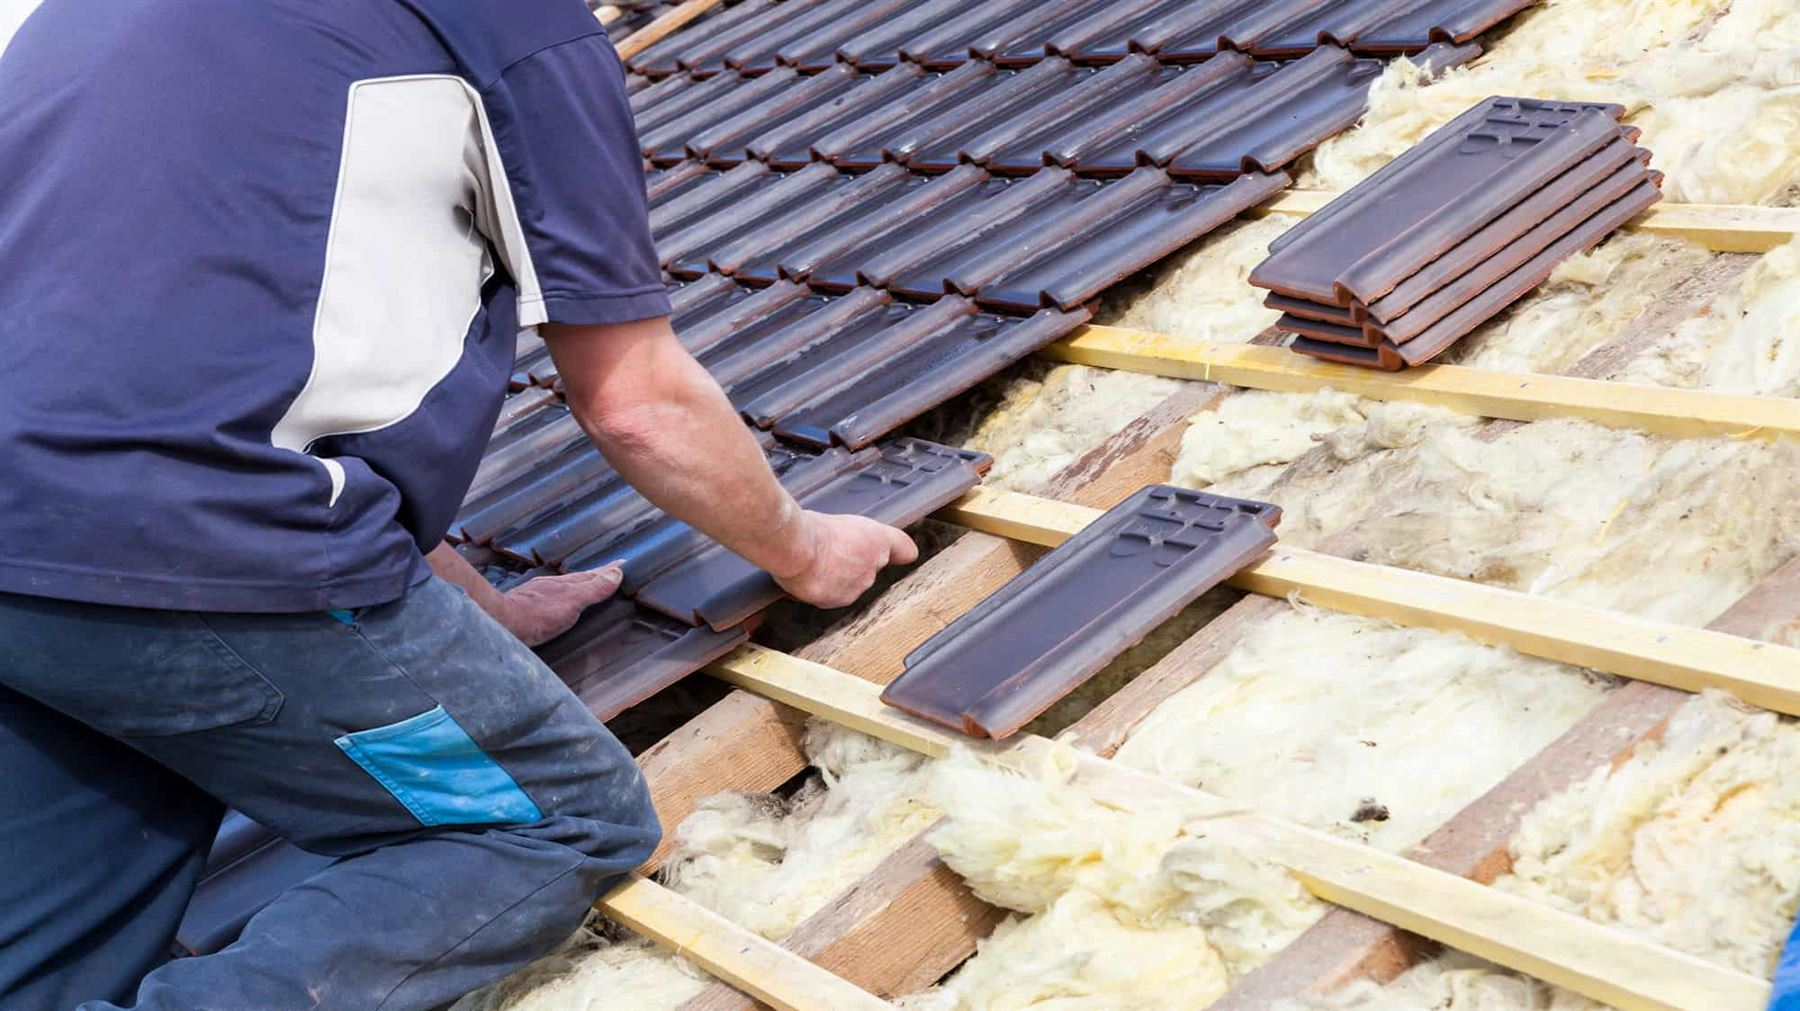 Preferred Roofing and Restoration L.L.C. of Indianapolis